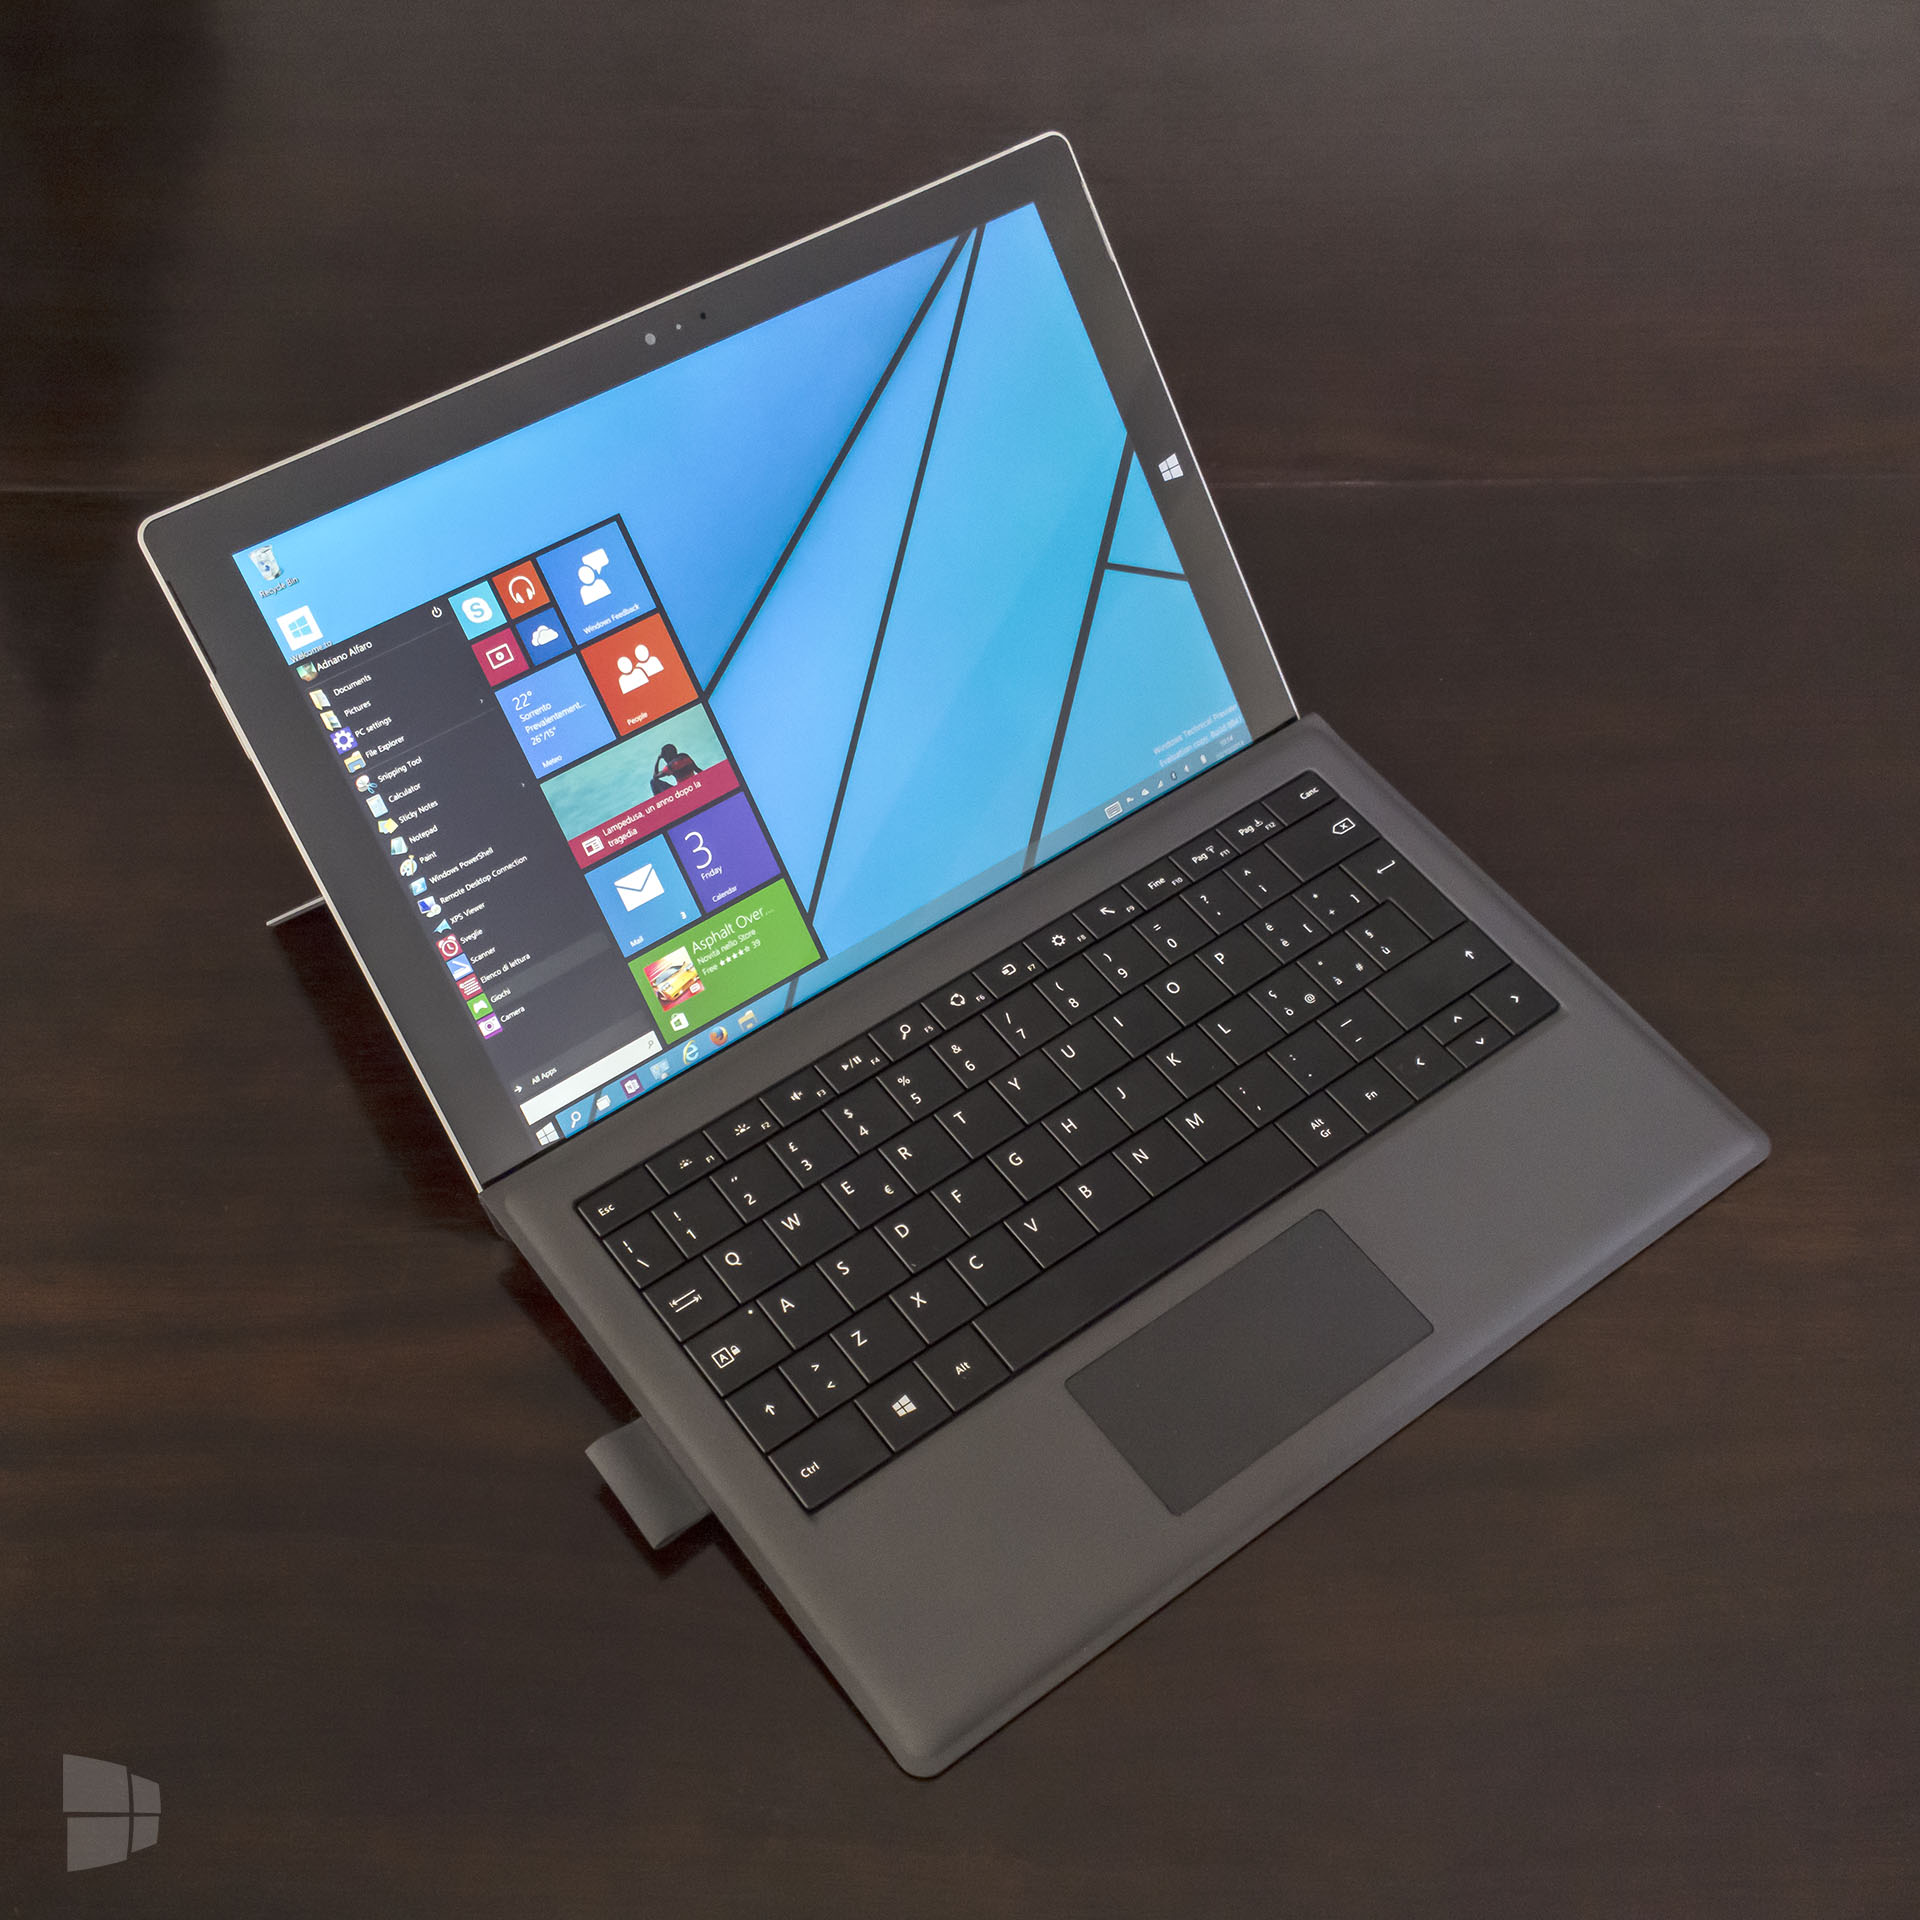 Surface Pro 3 Windows 10